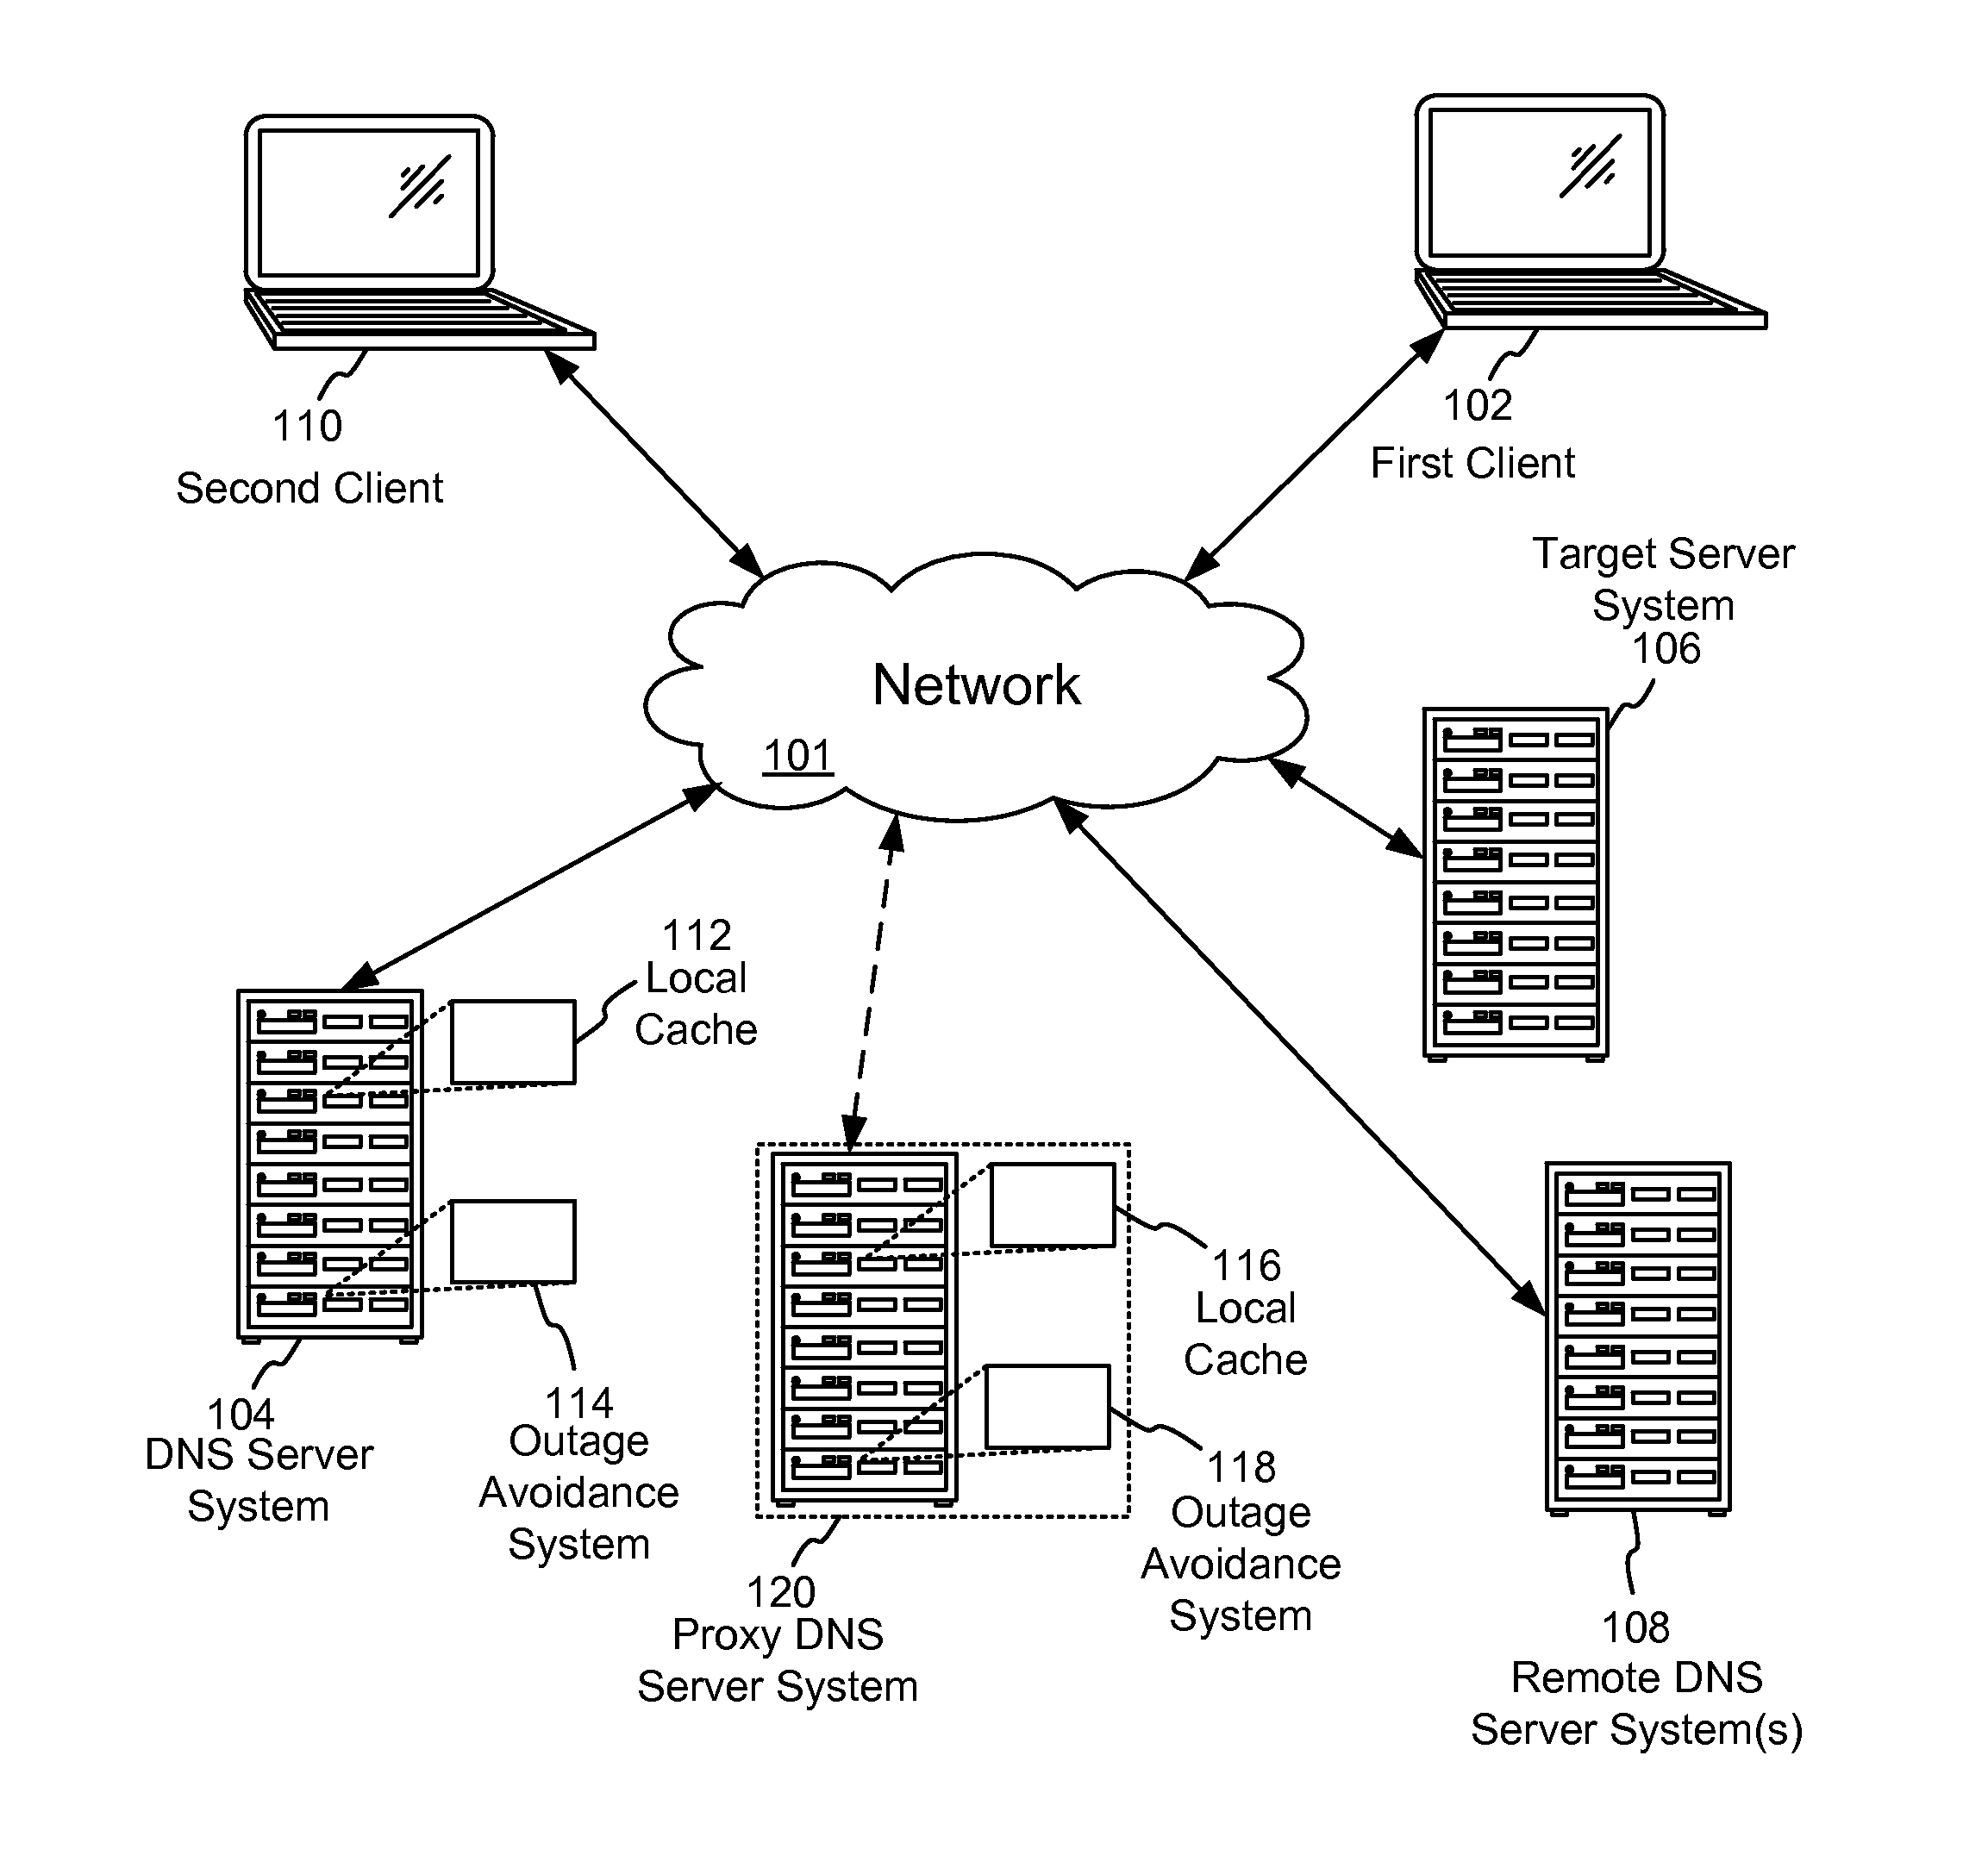 Patent US20140244725 - DNS Outage Avoidance Method for